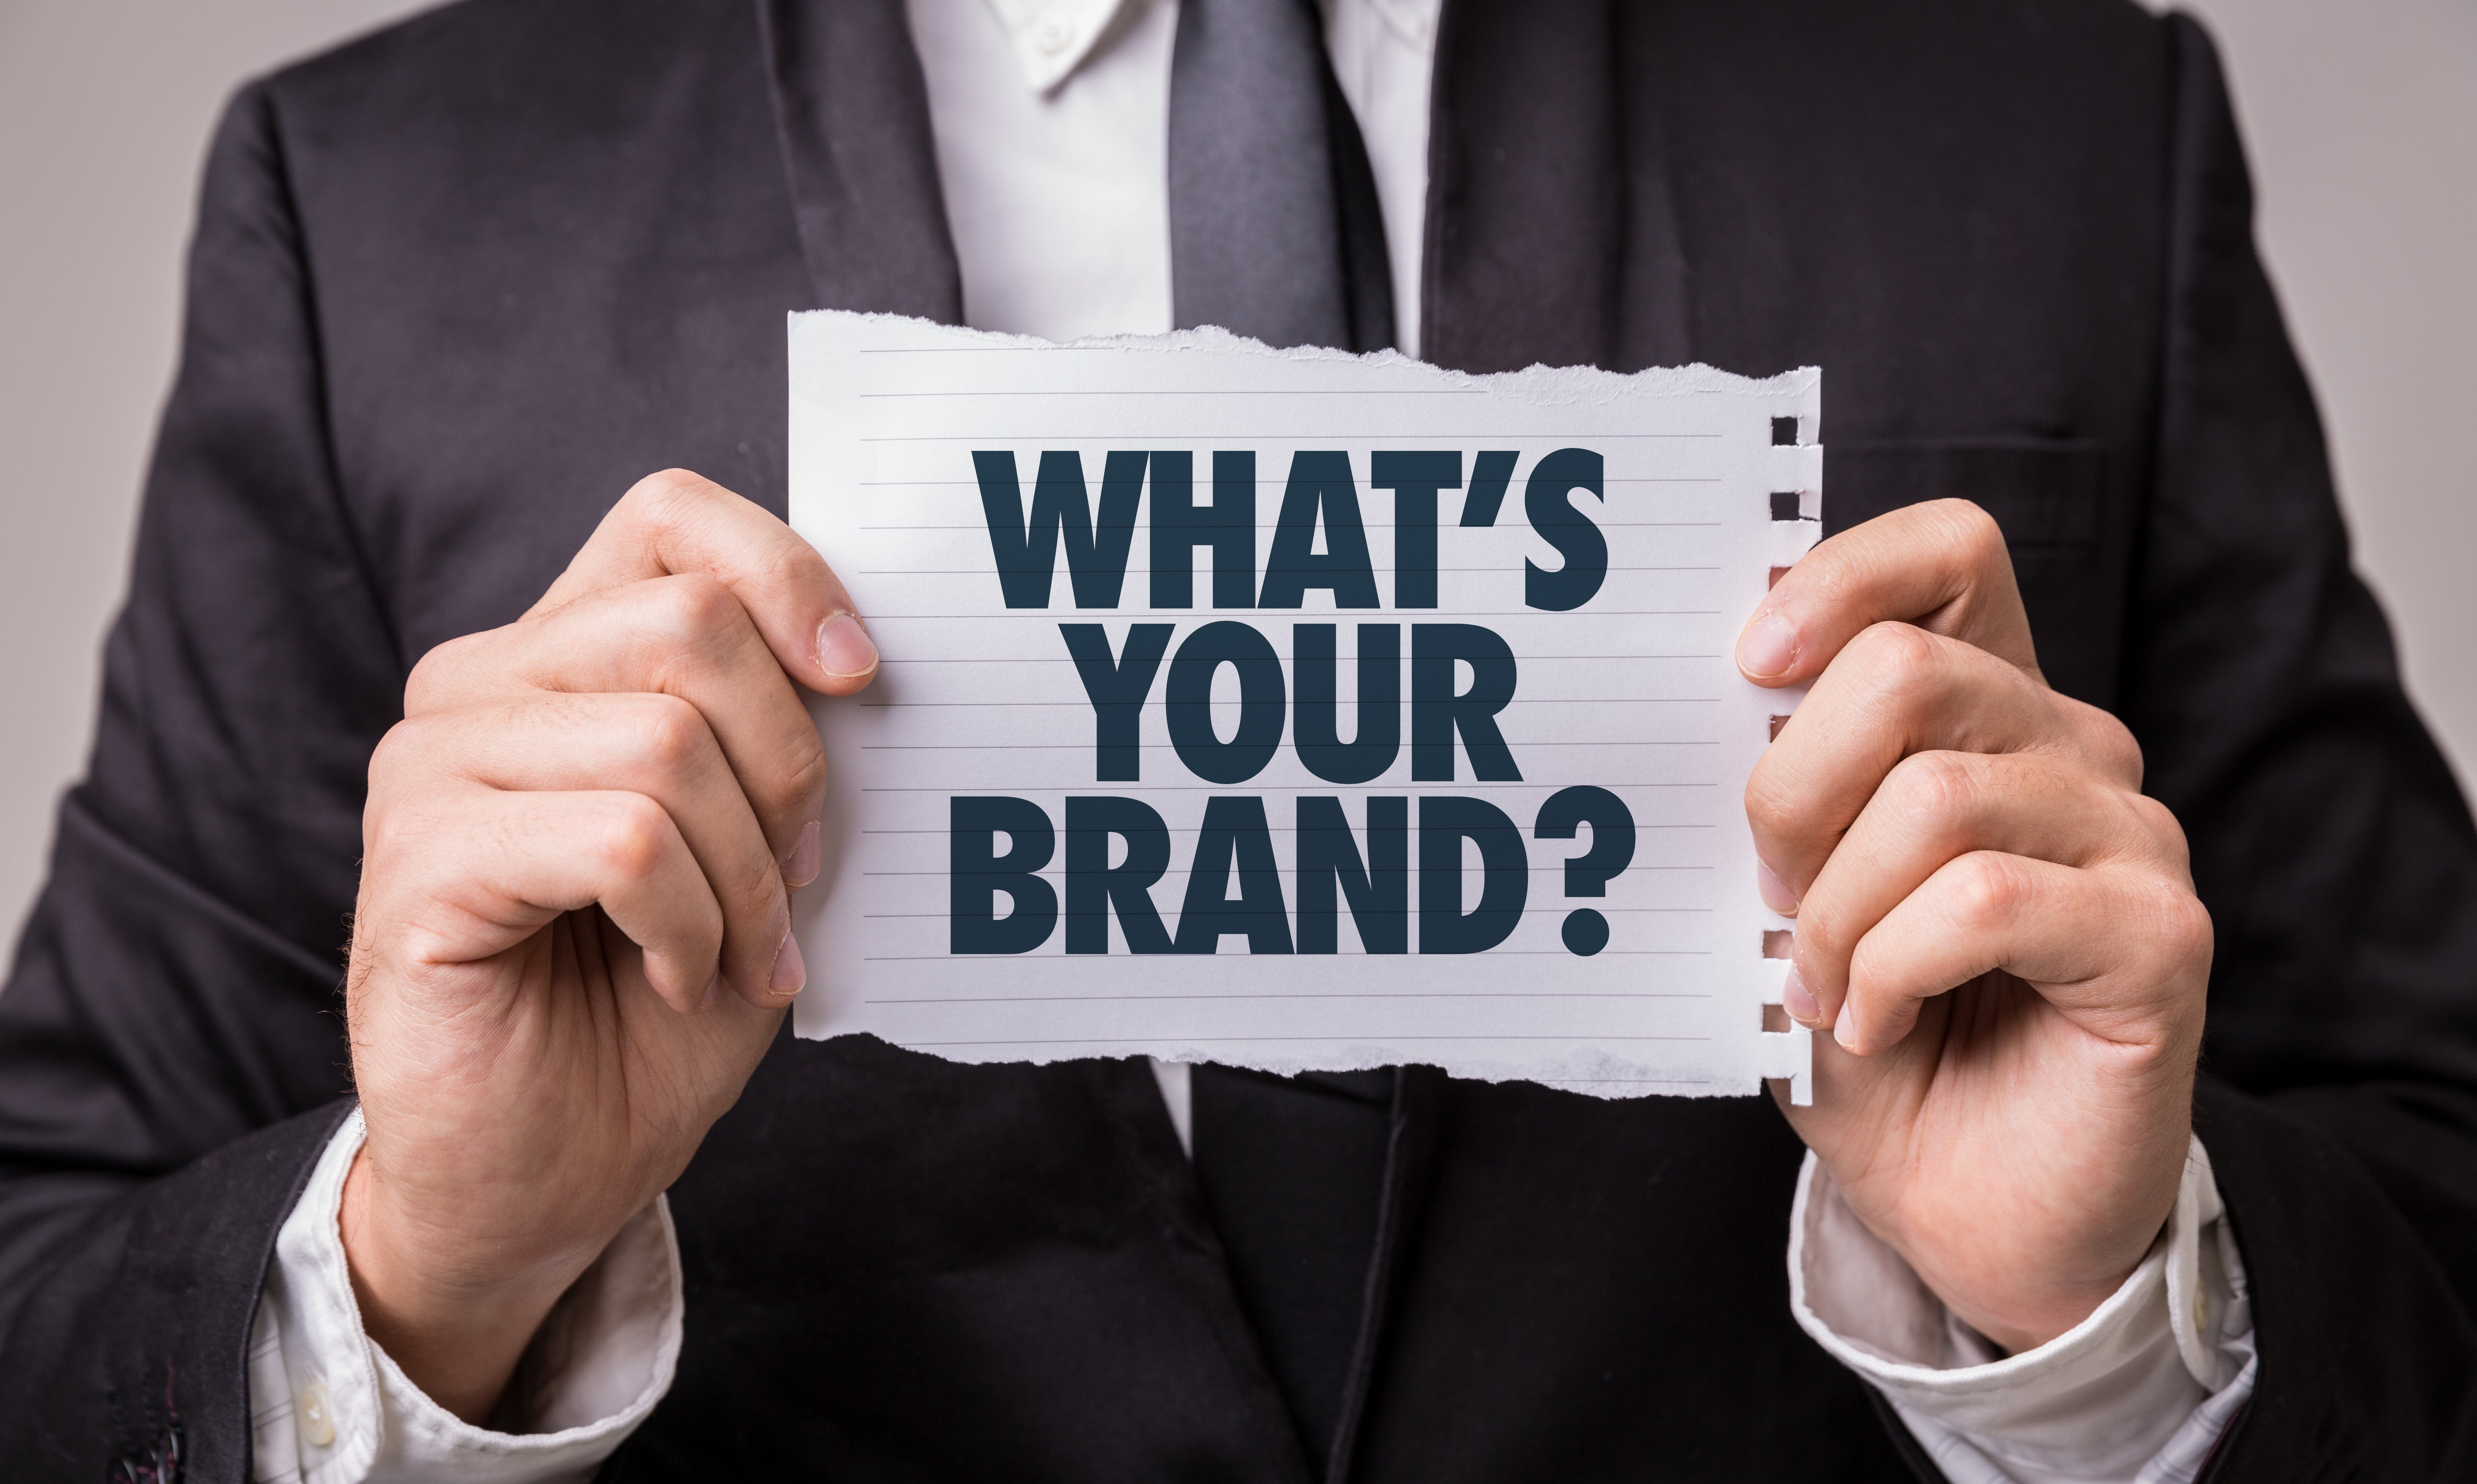 Branding: It's More Than Just A Fluffy Word